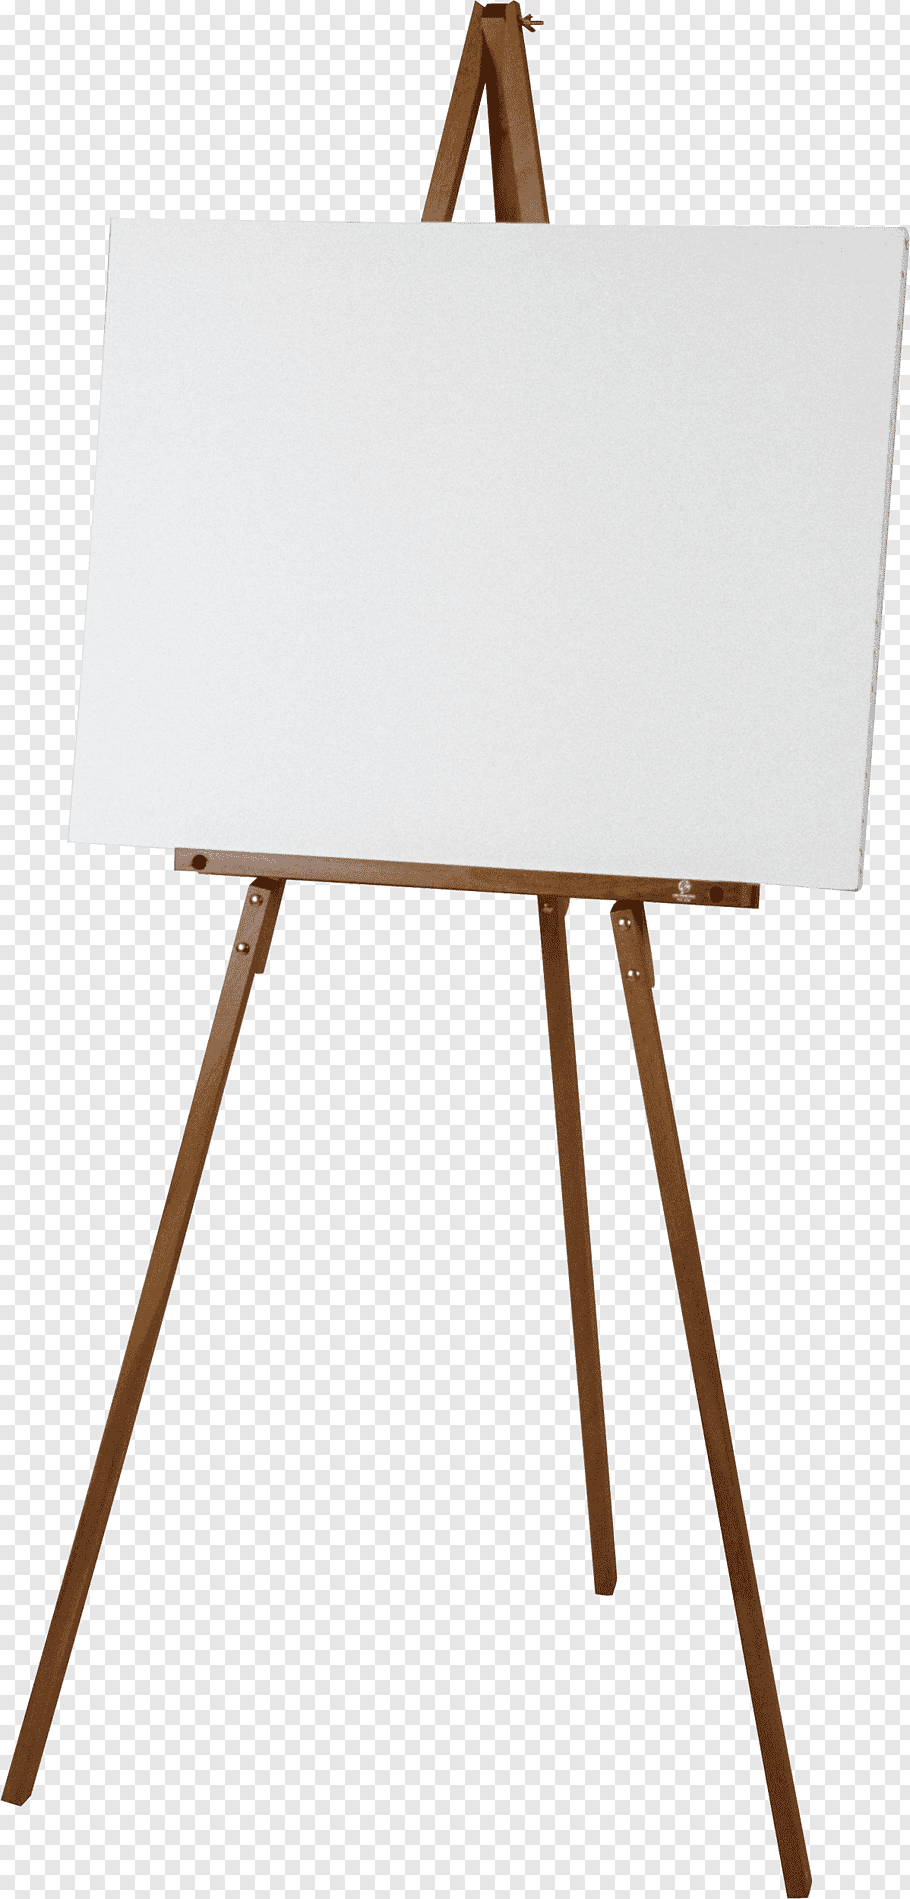 Portable Artist Easel Png - Brown easel and white canvas portable network graphic, Easel ...